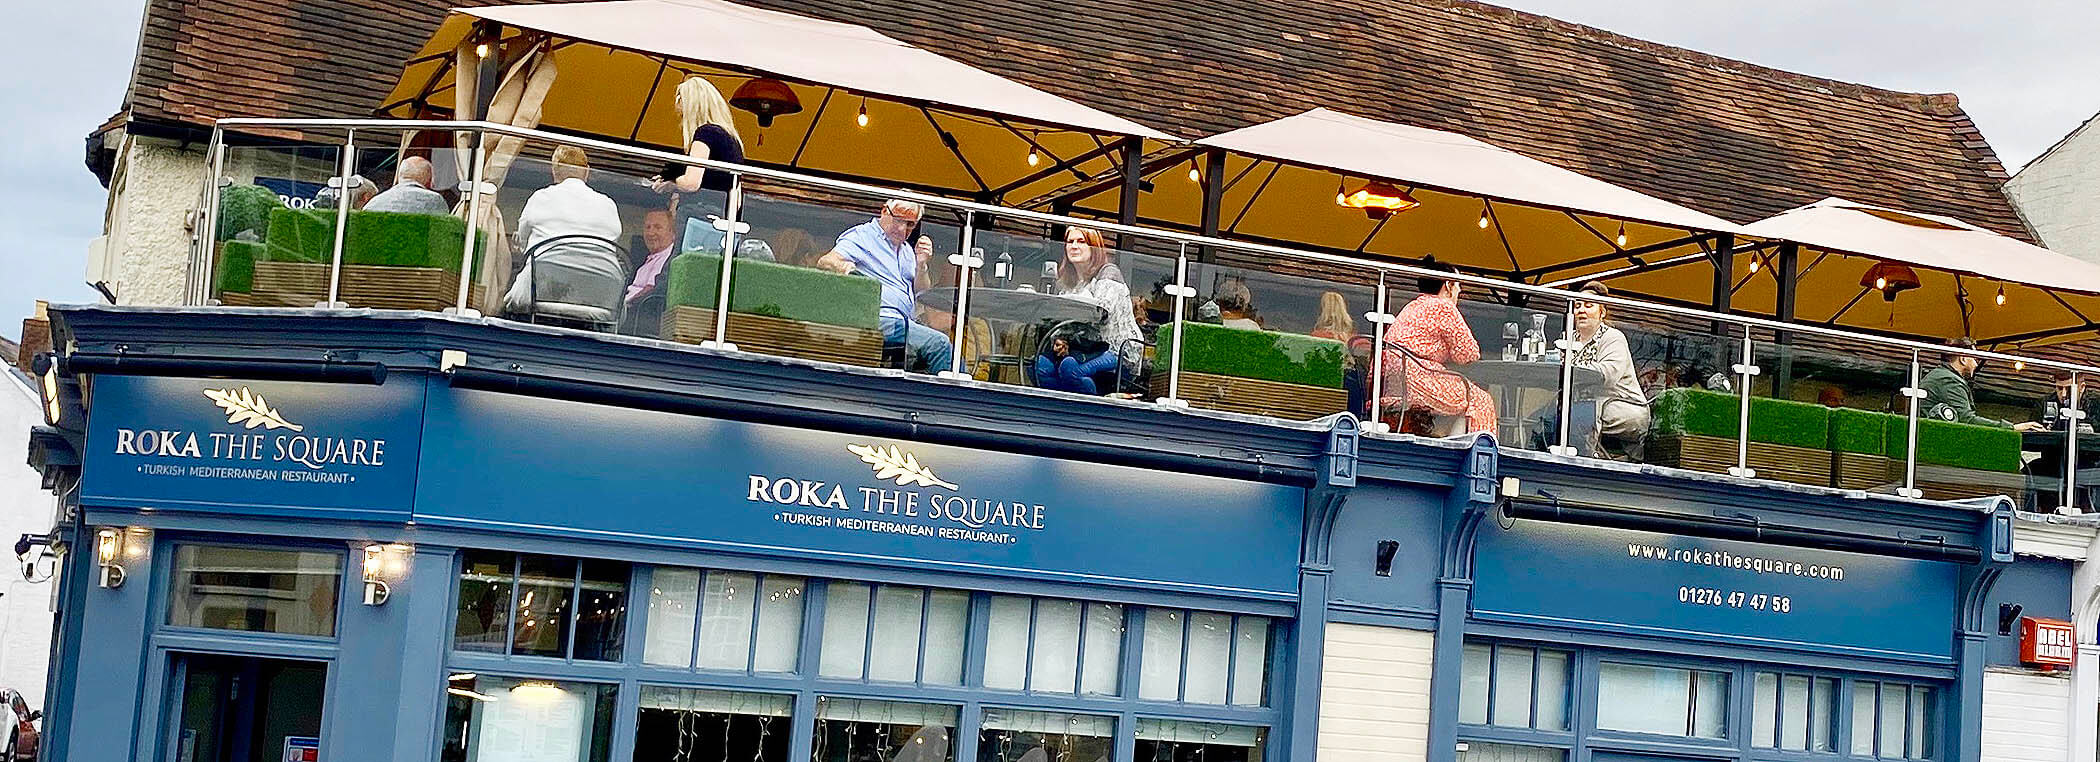 roka-the-square-bagshot-dinner-restaurant-take-away-foods